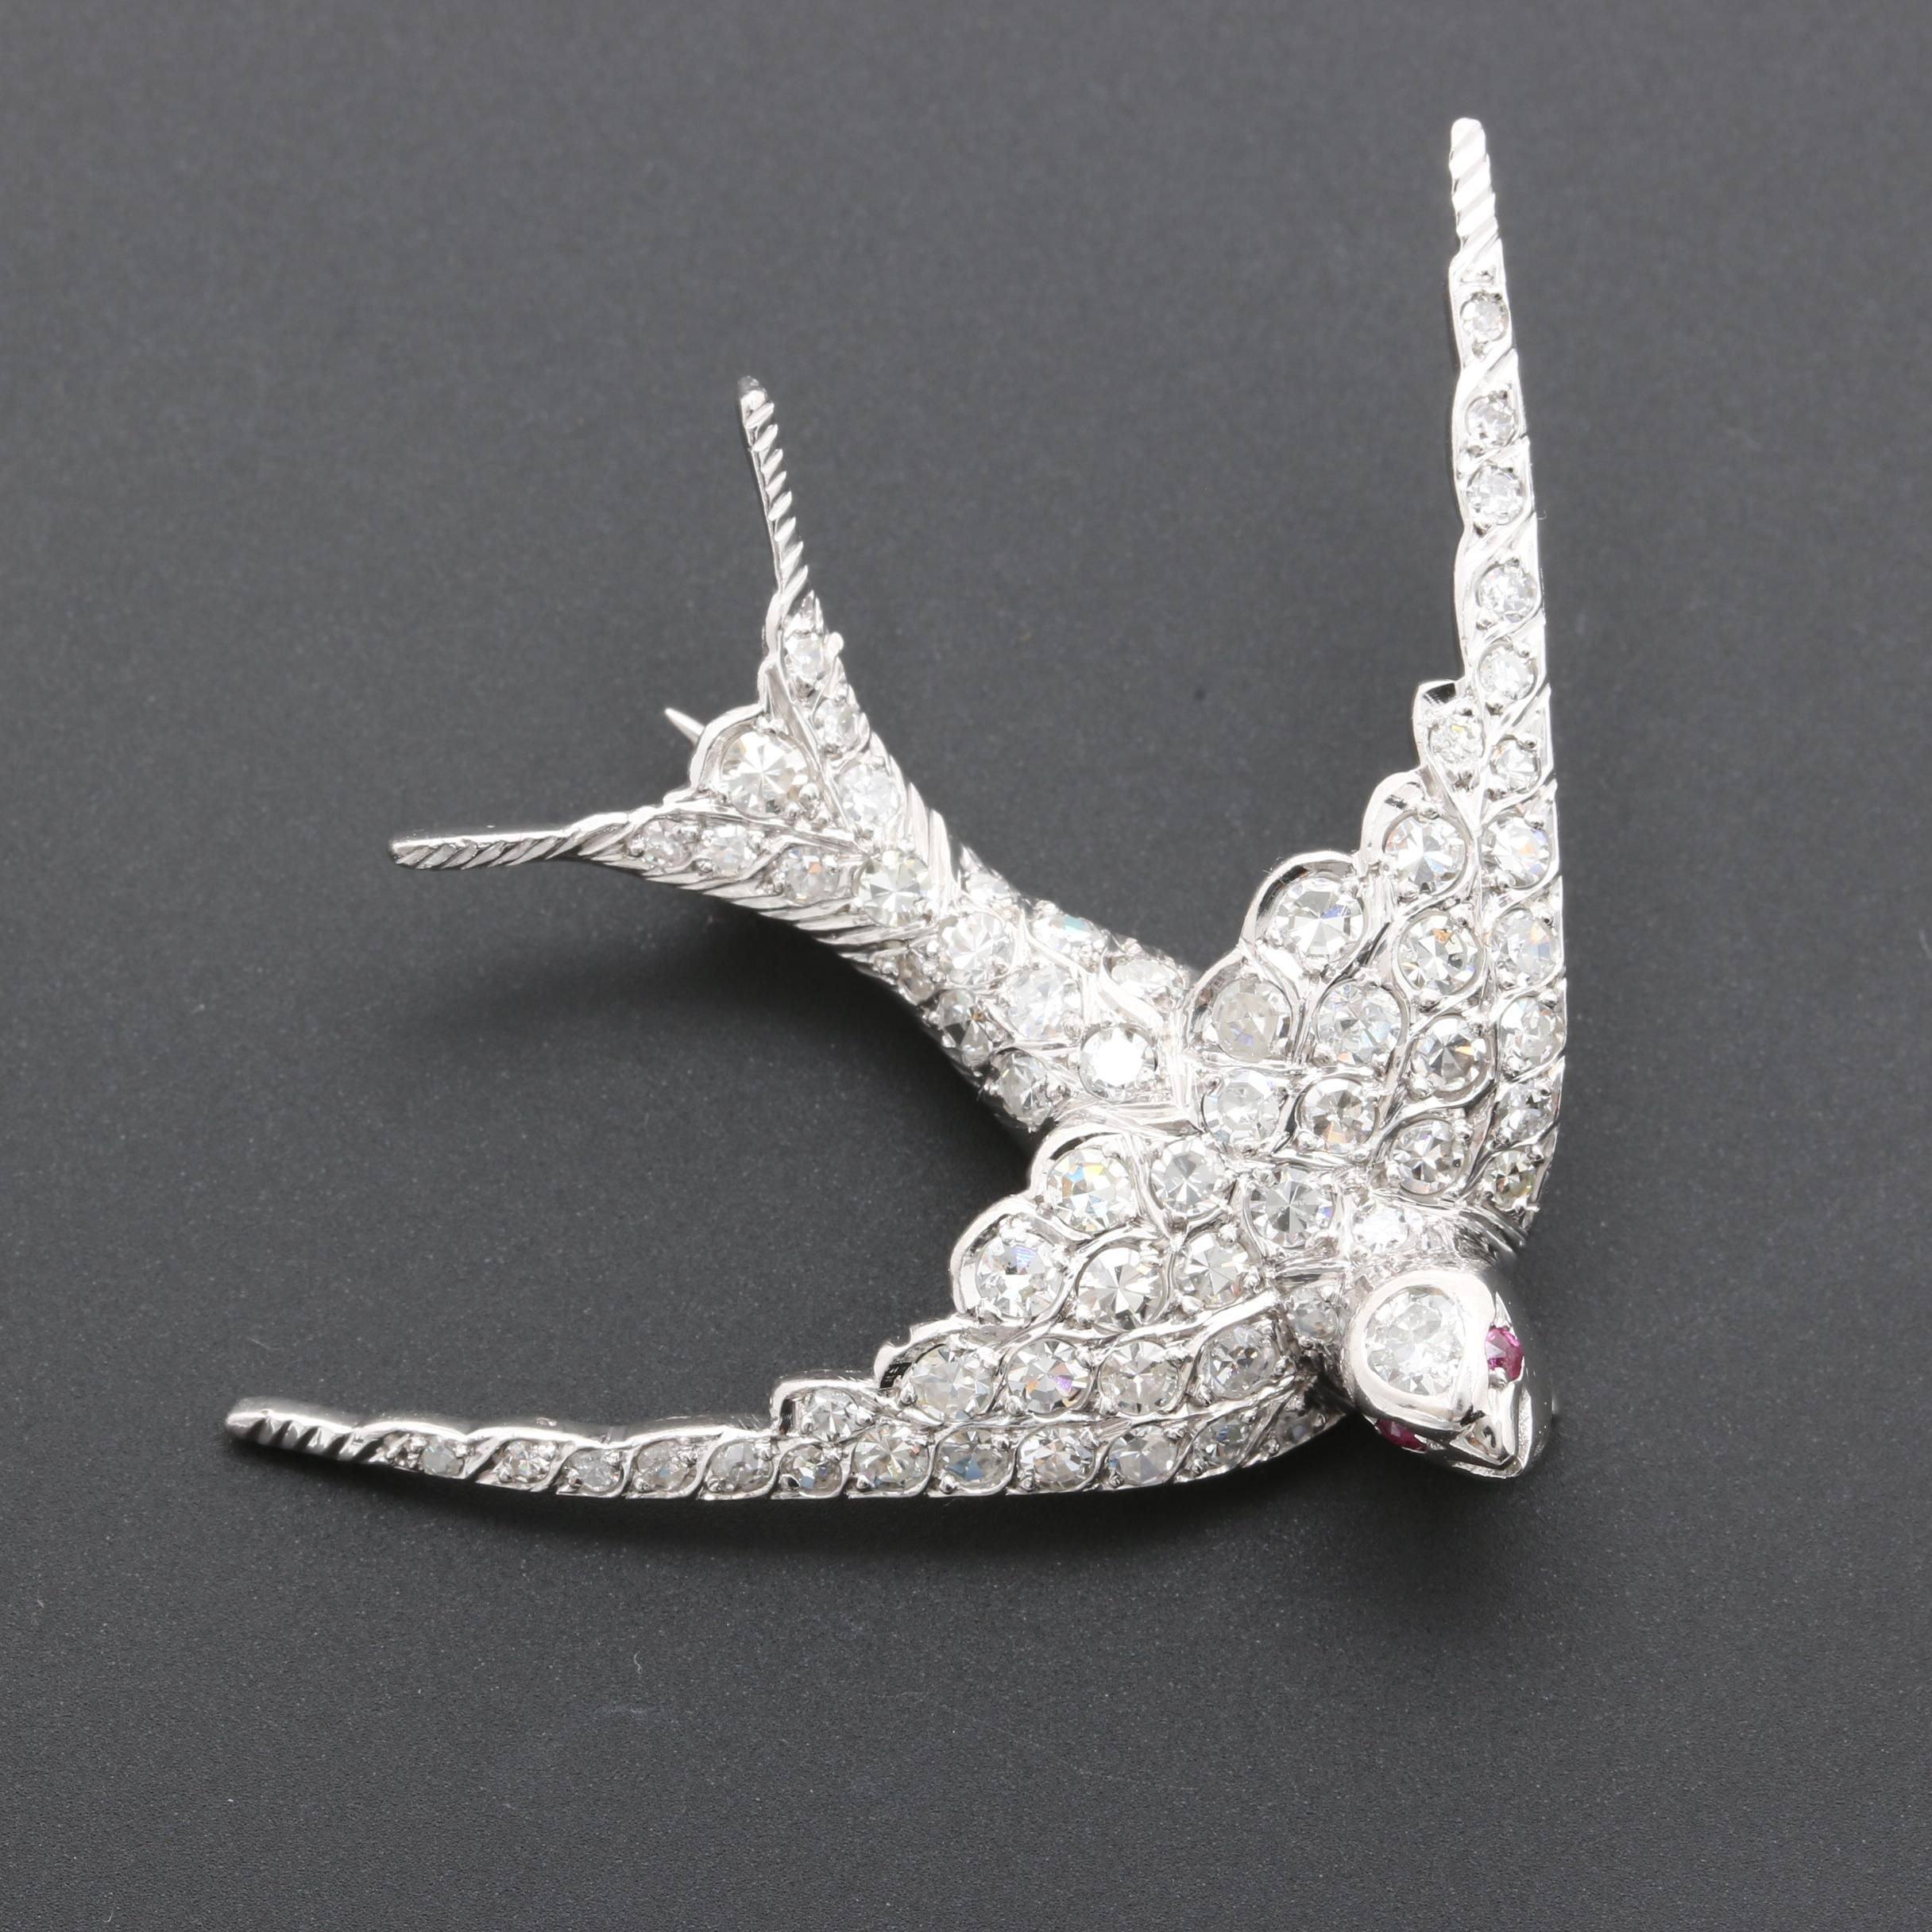 14K White Gold and Platinum 1.75 CTW Diamond and Ruby Bird Brooch